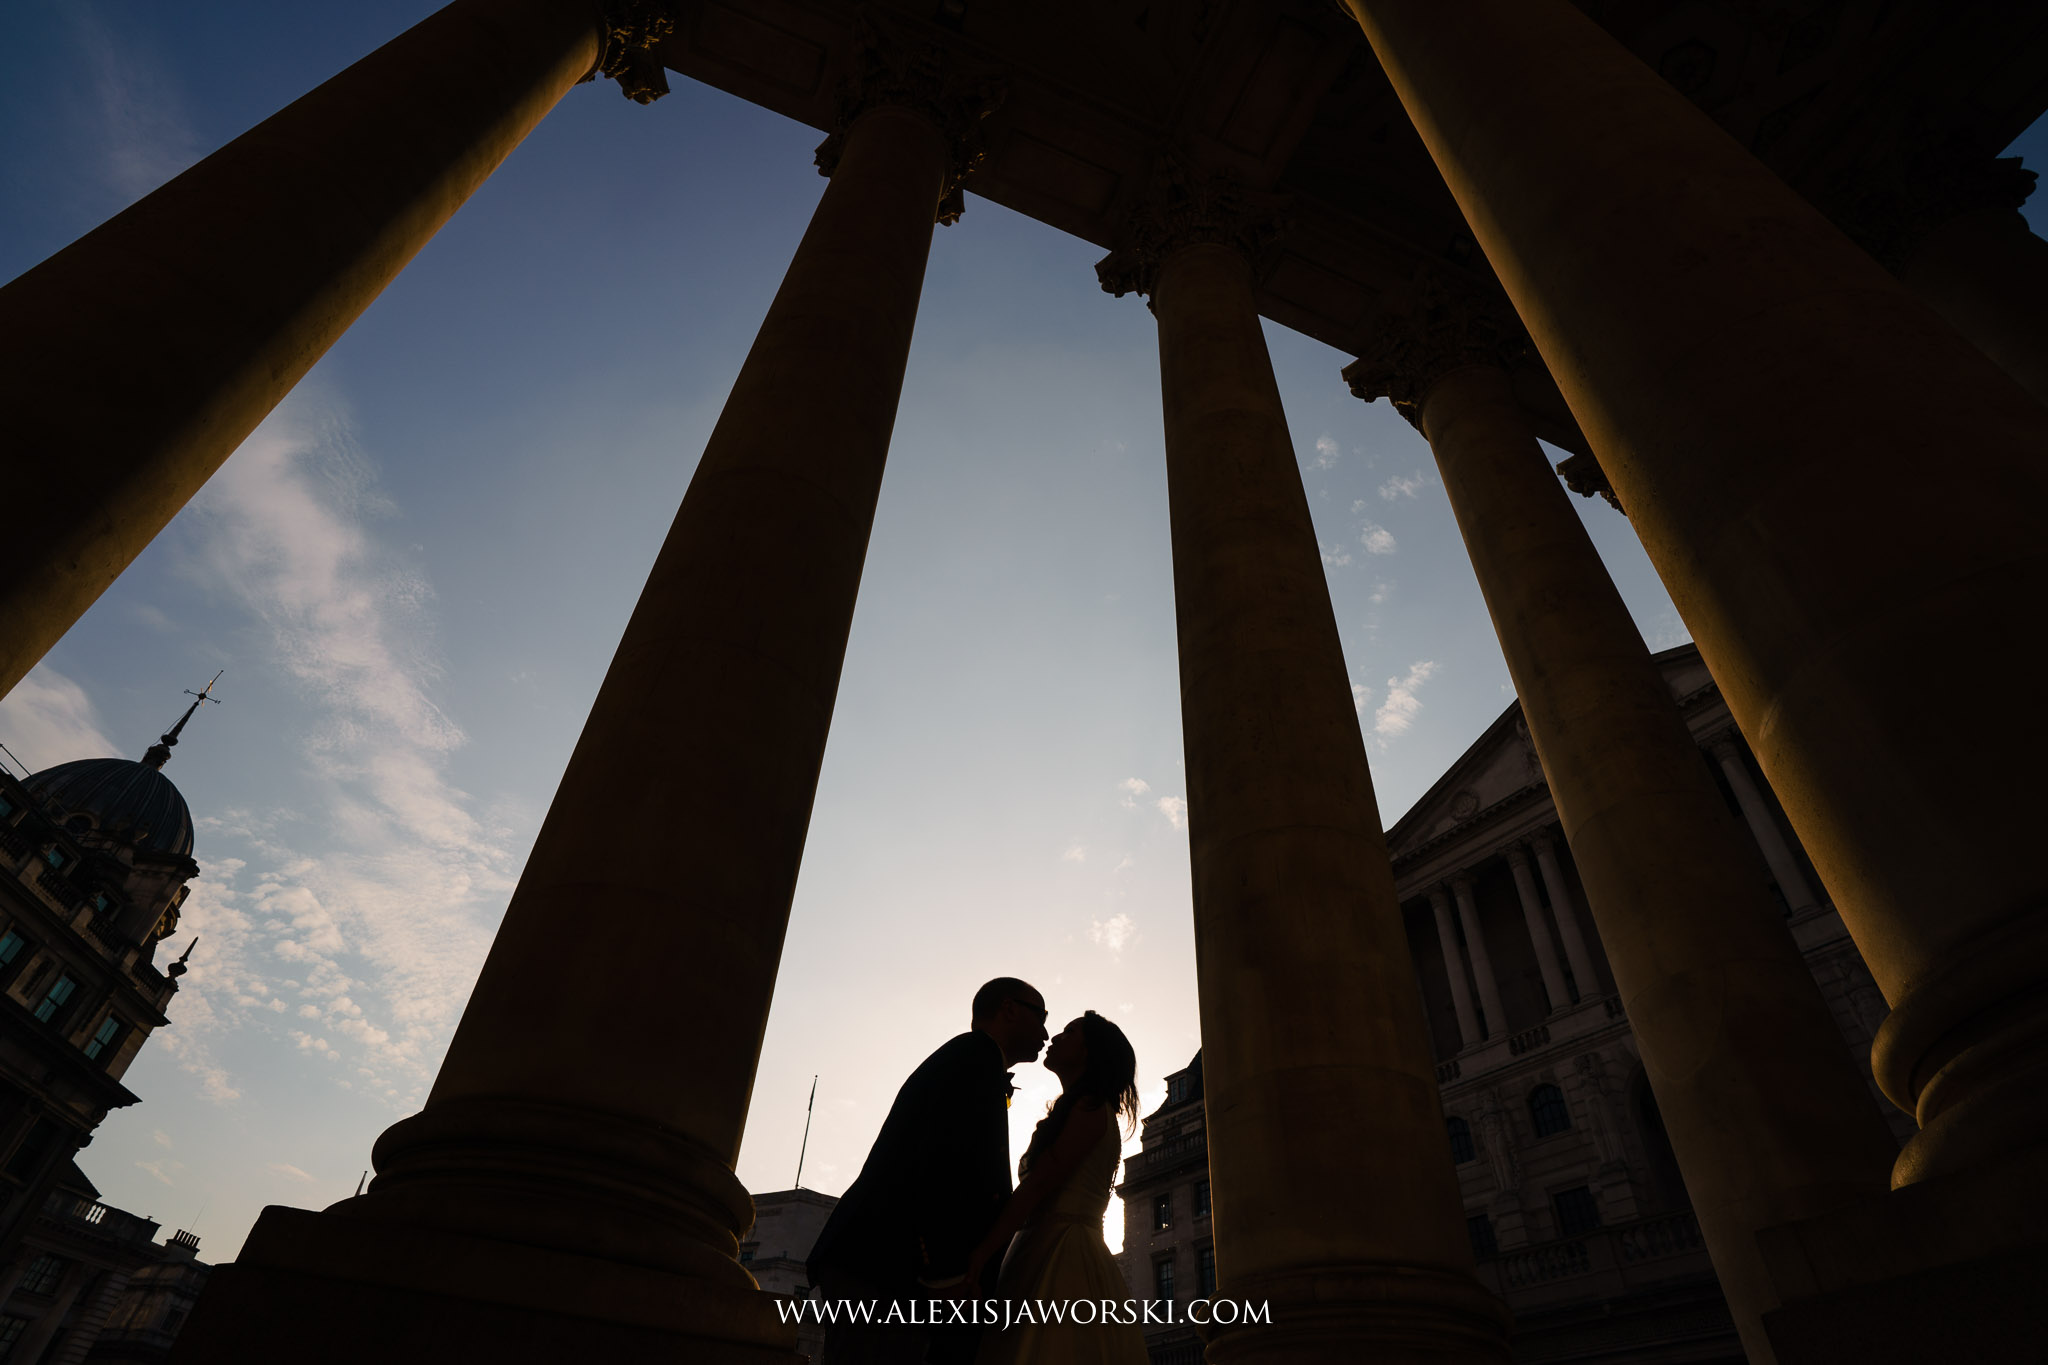 a silhouette at the royal stock exchange